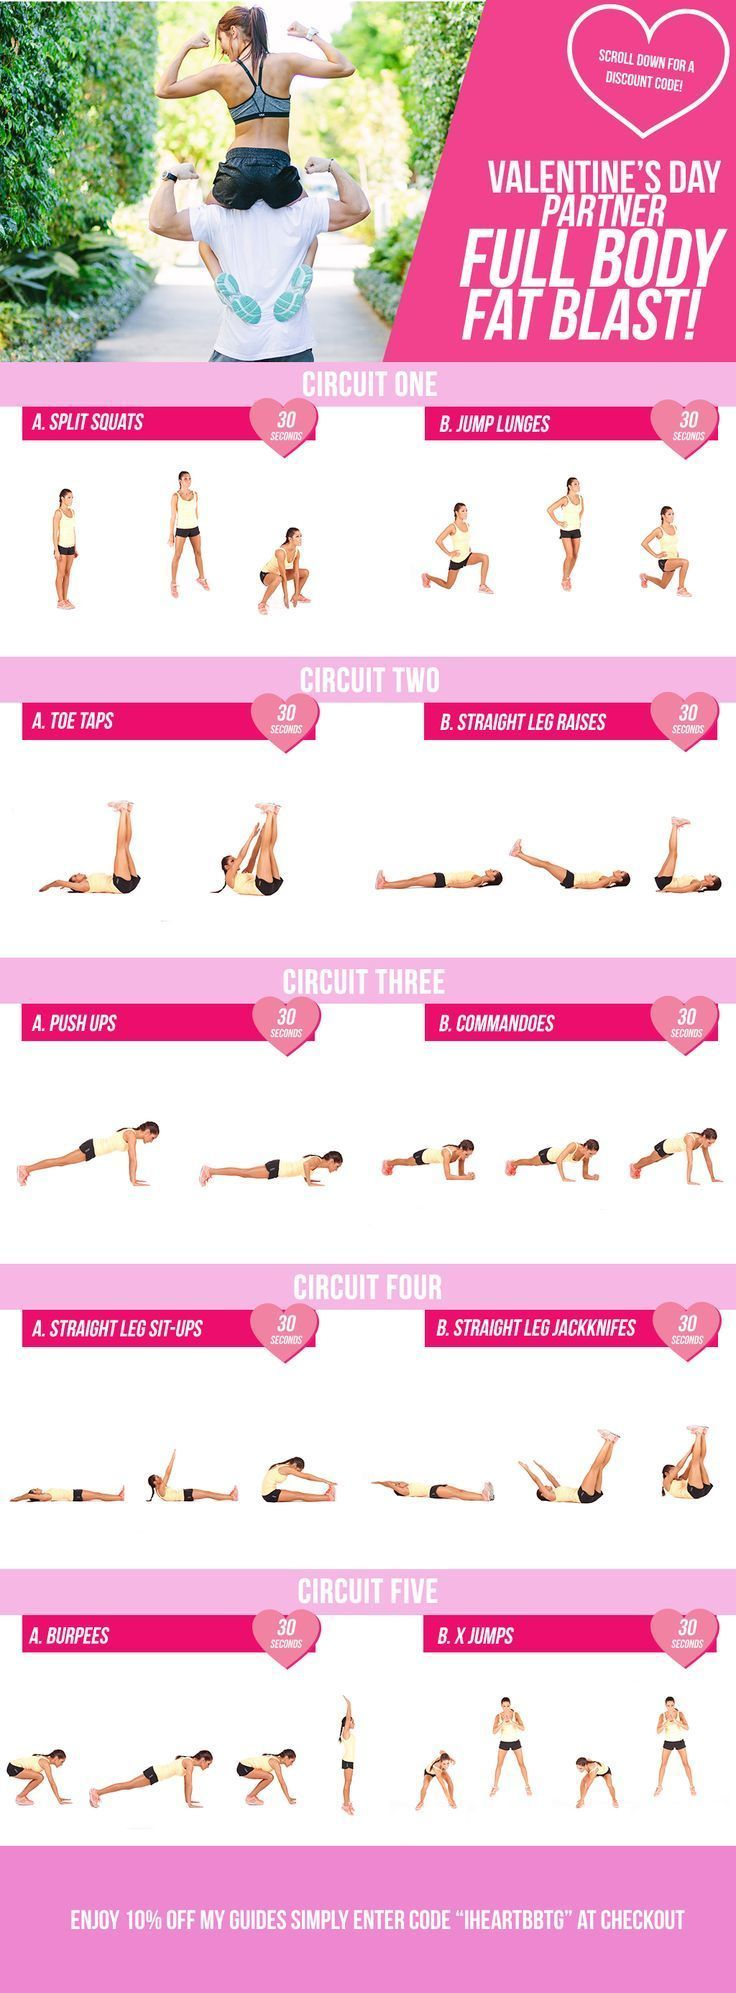 Valentine's Day Fat Blasting Partner Workout! – Kayla Itsines